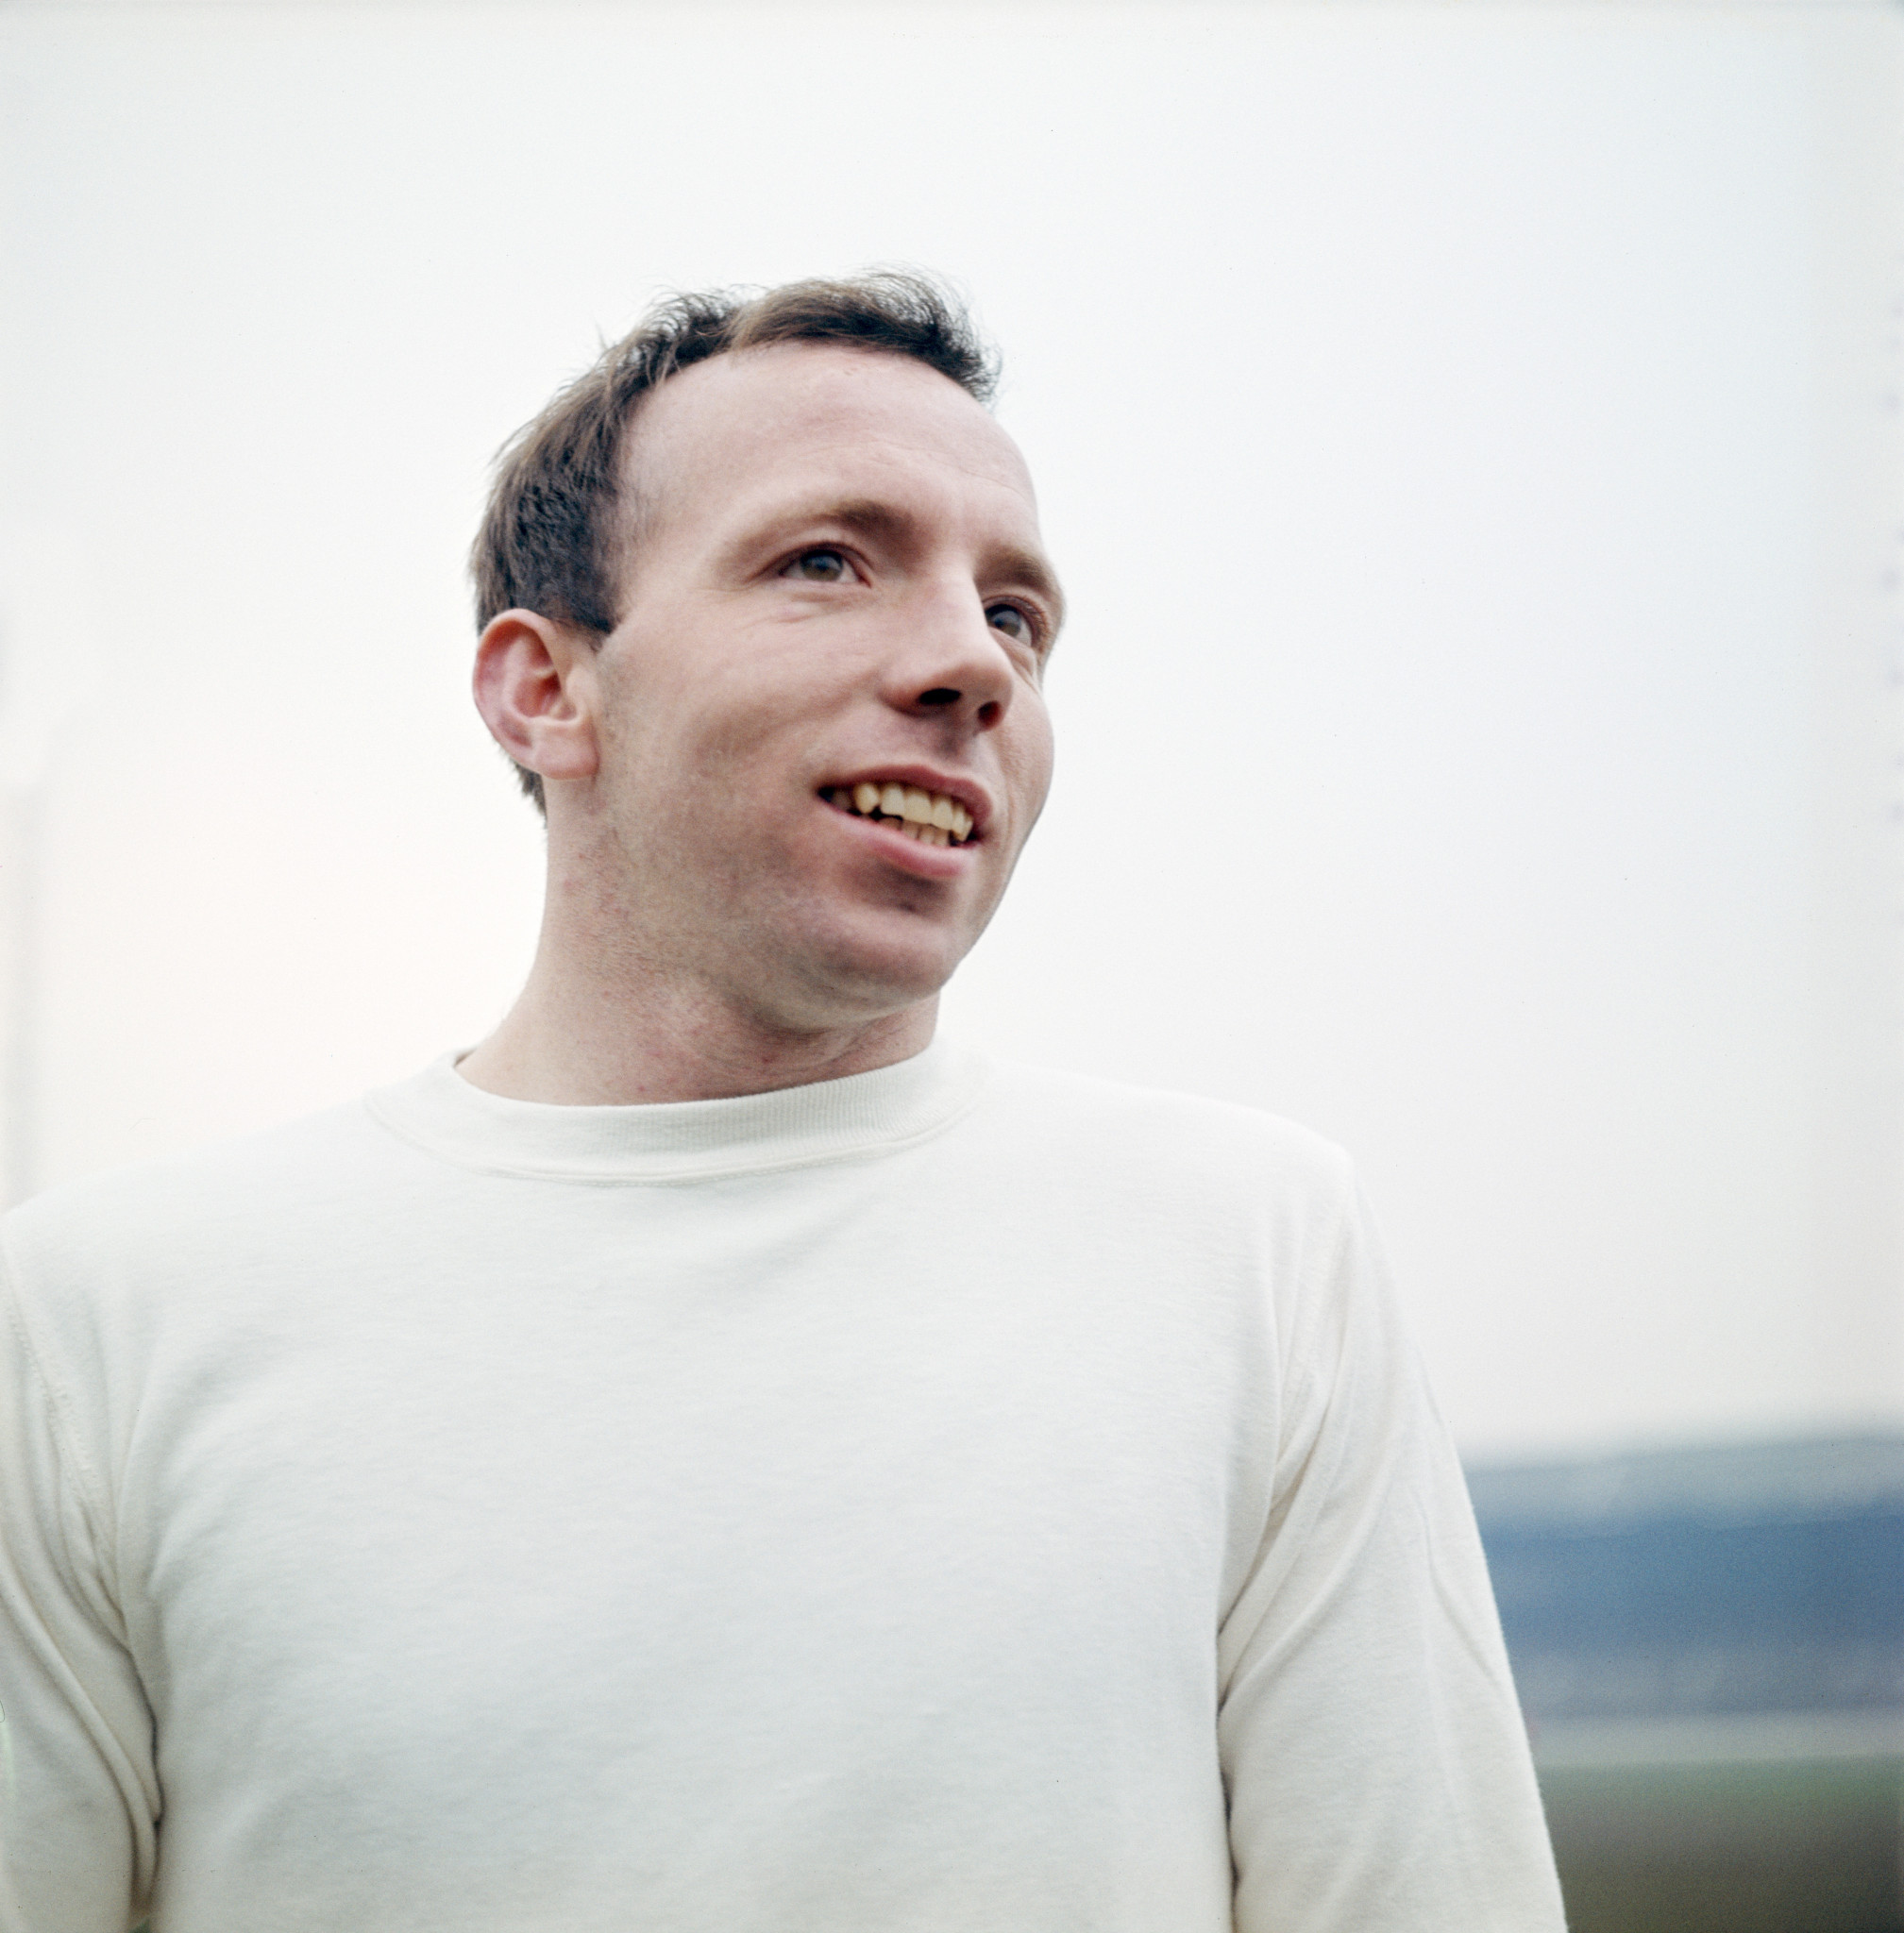 Tributes paid to England 1966 Football World Cup winner Nobby Stiles after death aged 78